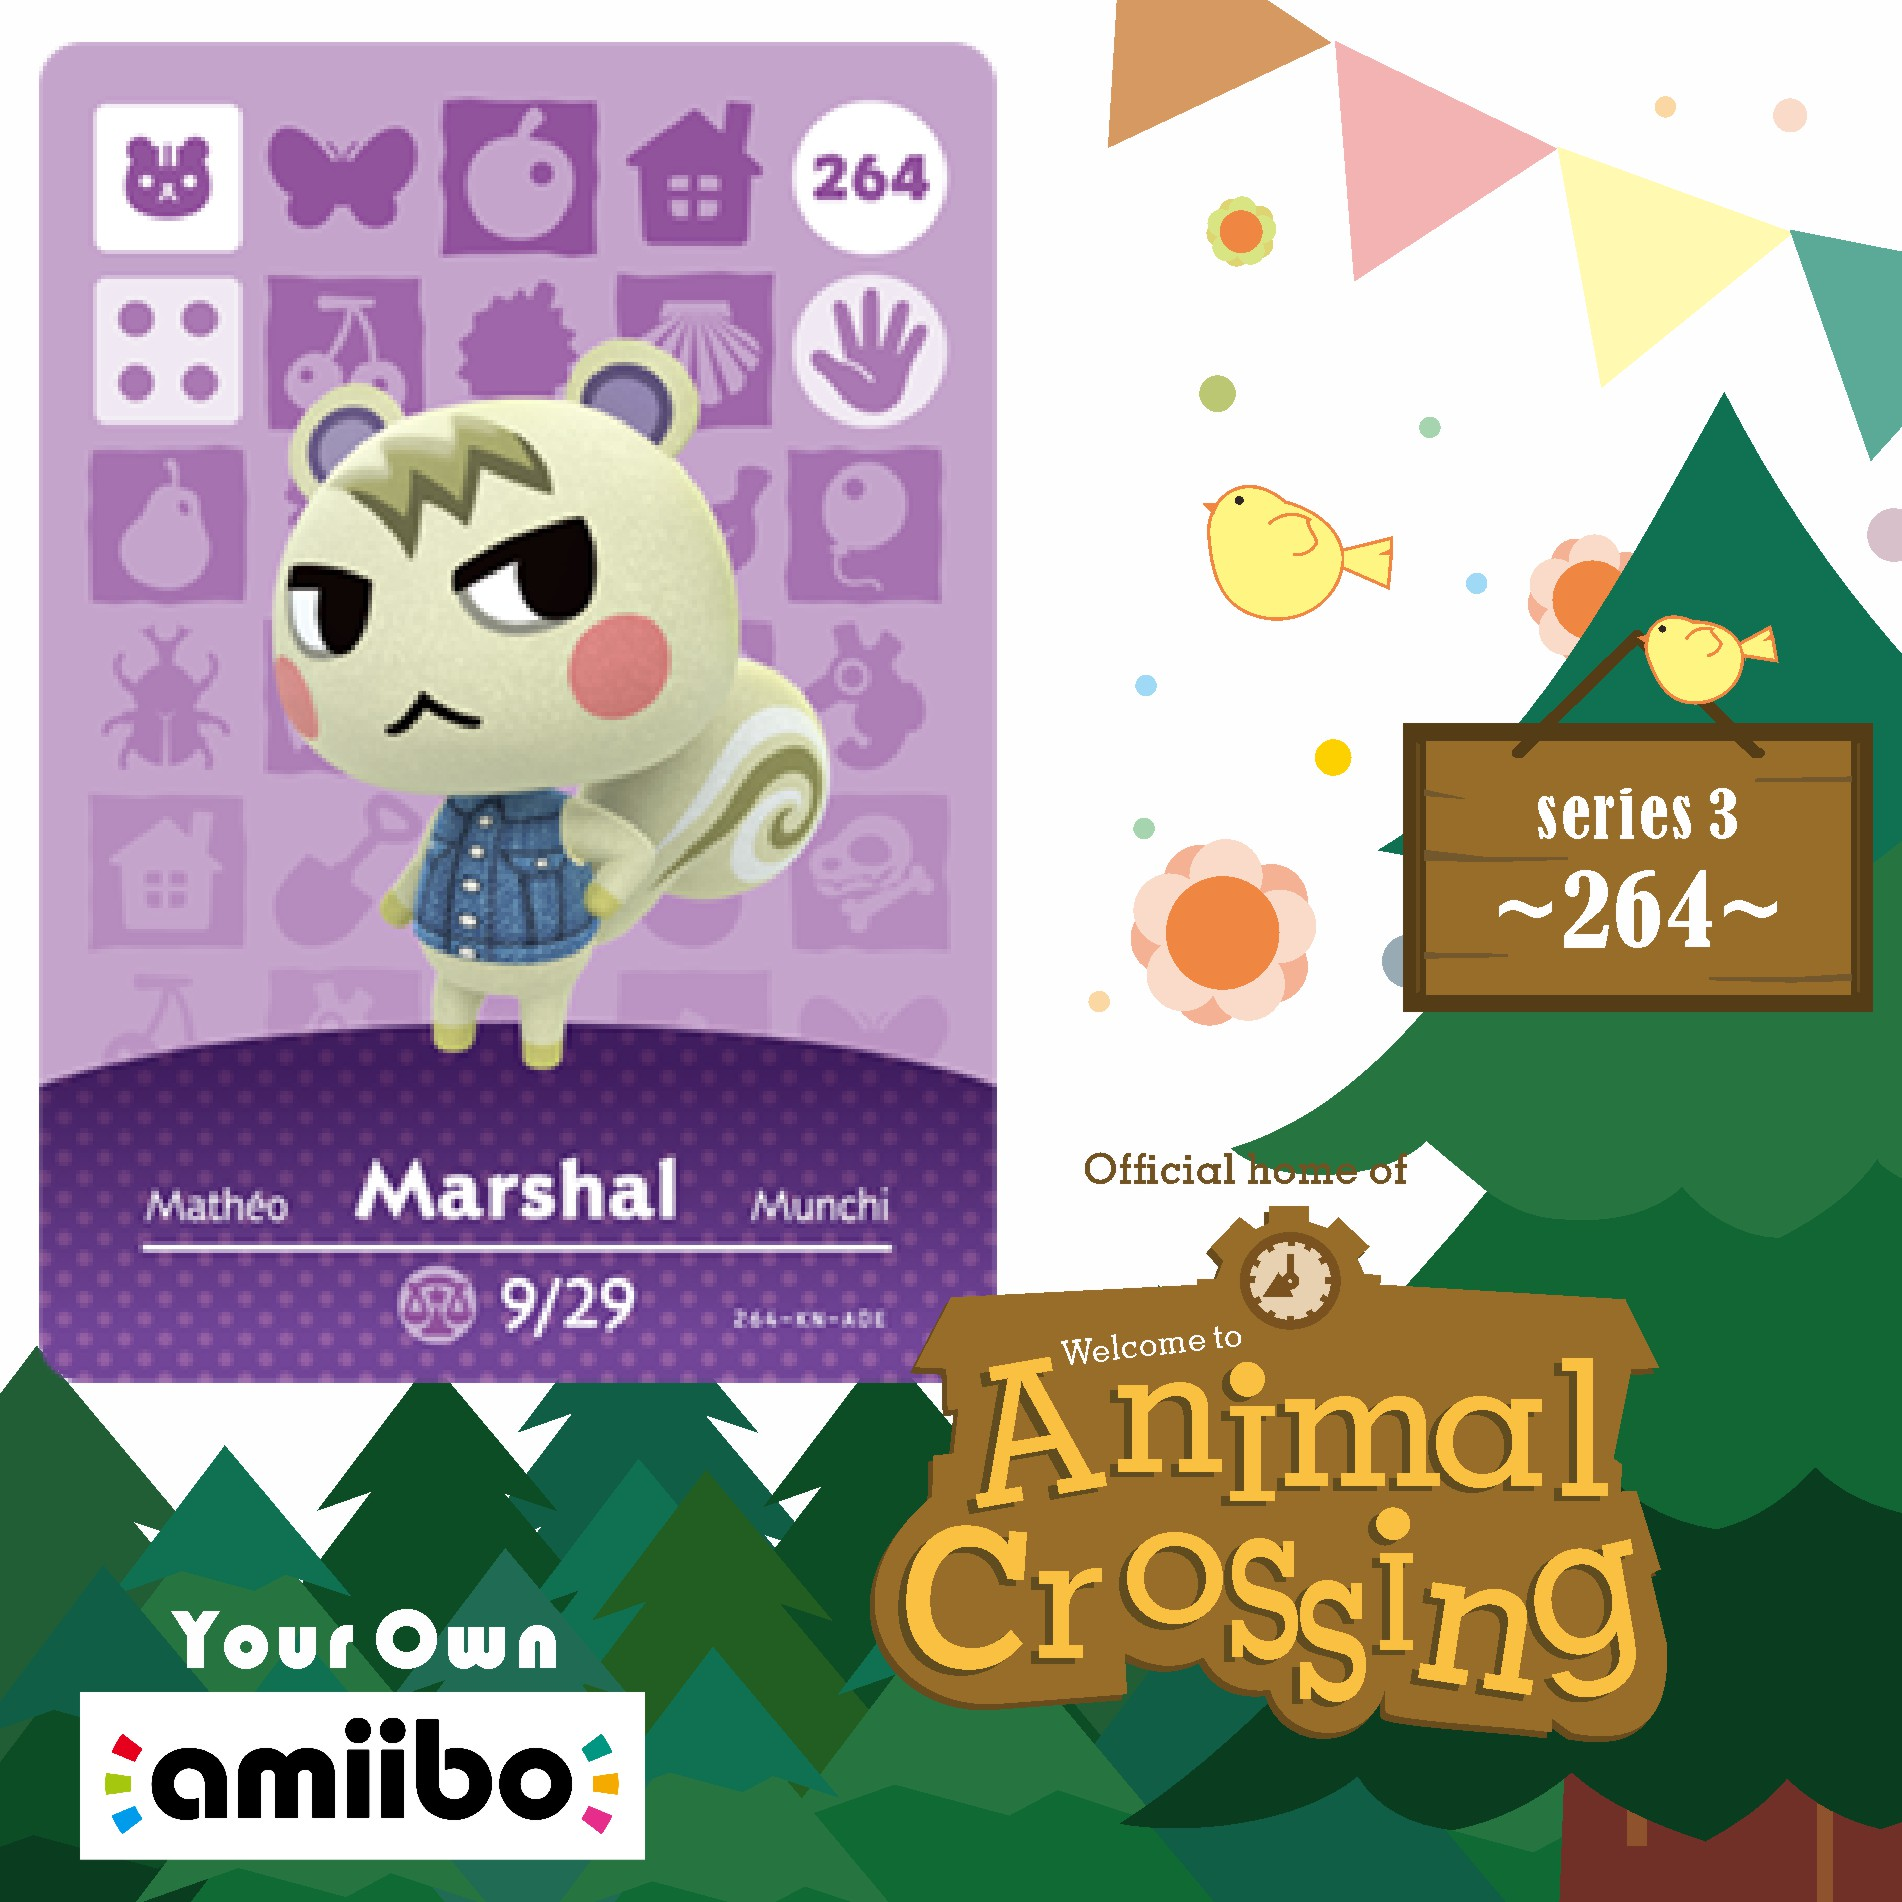 Marshal Animal Crossing Marshal Amiibo 264 Animal Crossing Switch Rv Welcome Amiibo Villager New Horizons Amiibo Card Series 3